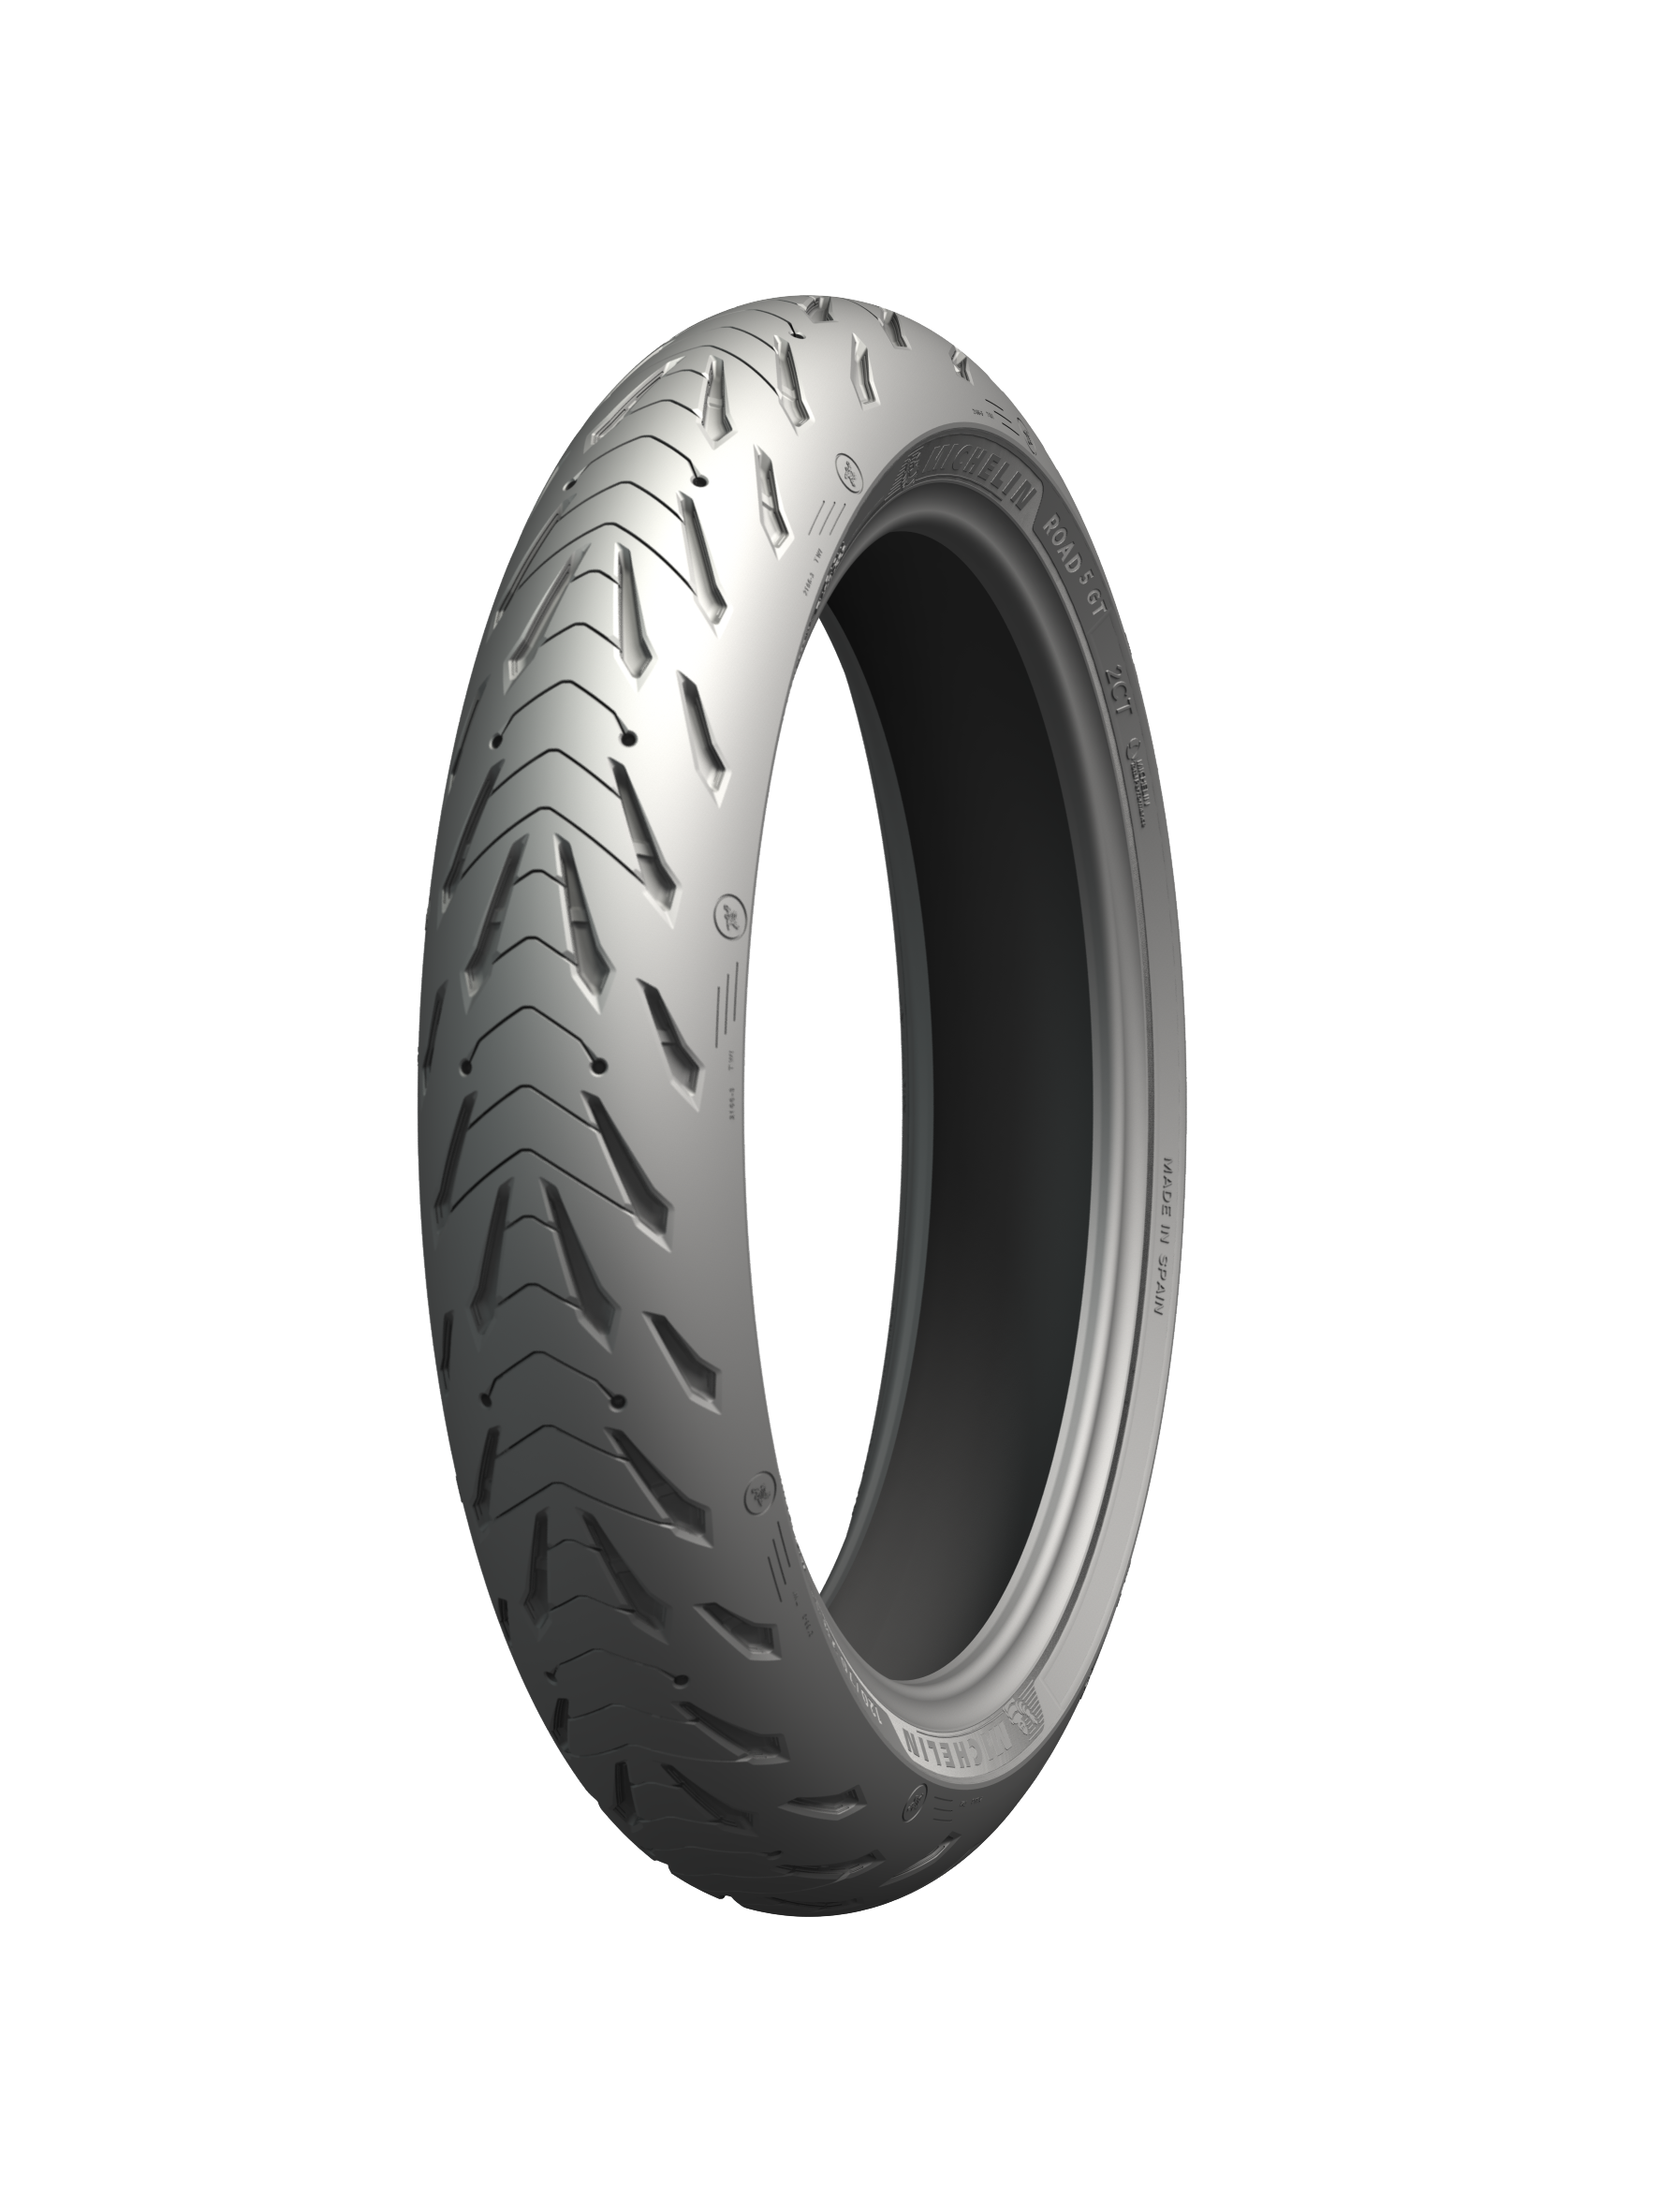 MICHELIN_Photo_Tyre_ROAD_5_GT_AV_120_70_ZR17_0003.png